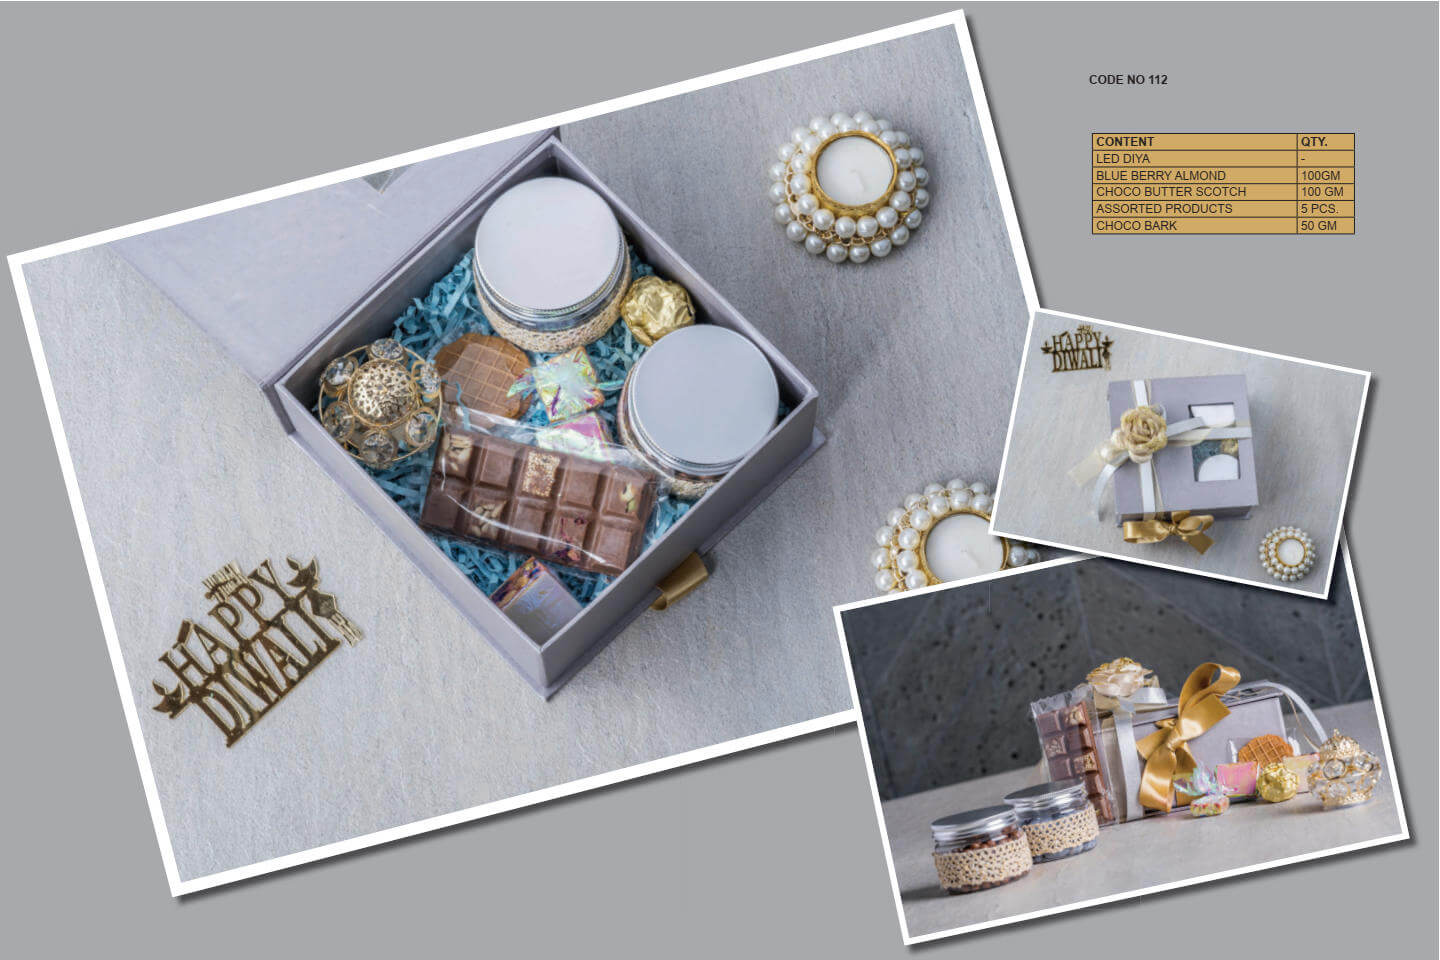 Diwali Corporate Gift Suppliers CODE NO 112